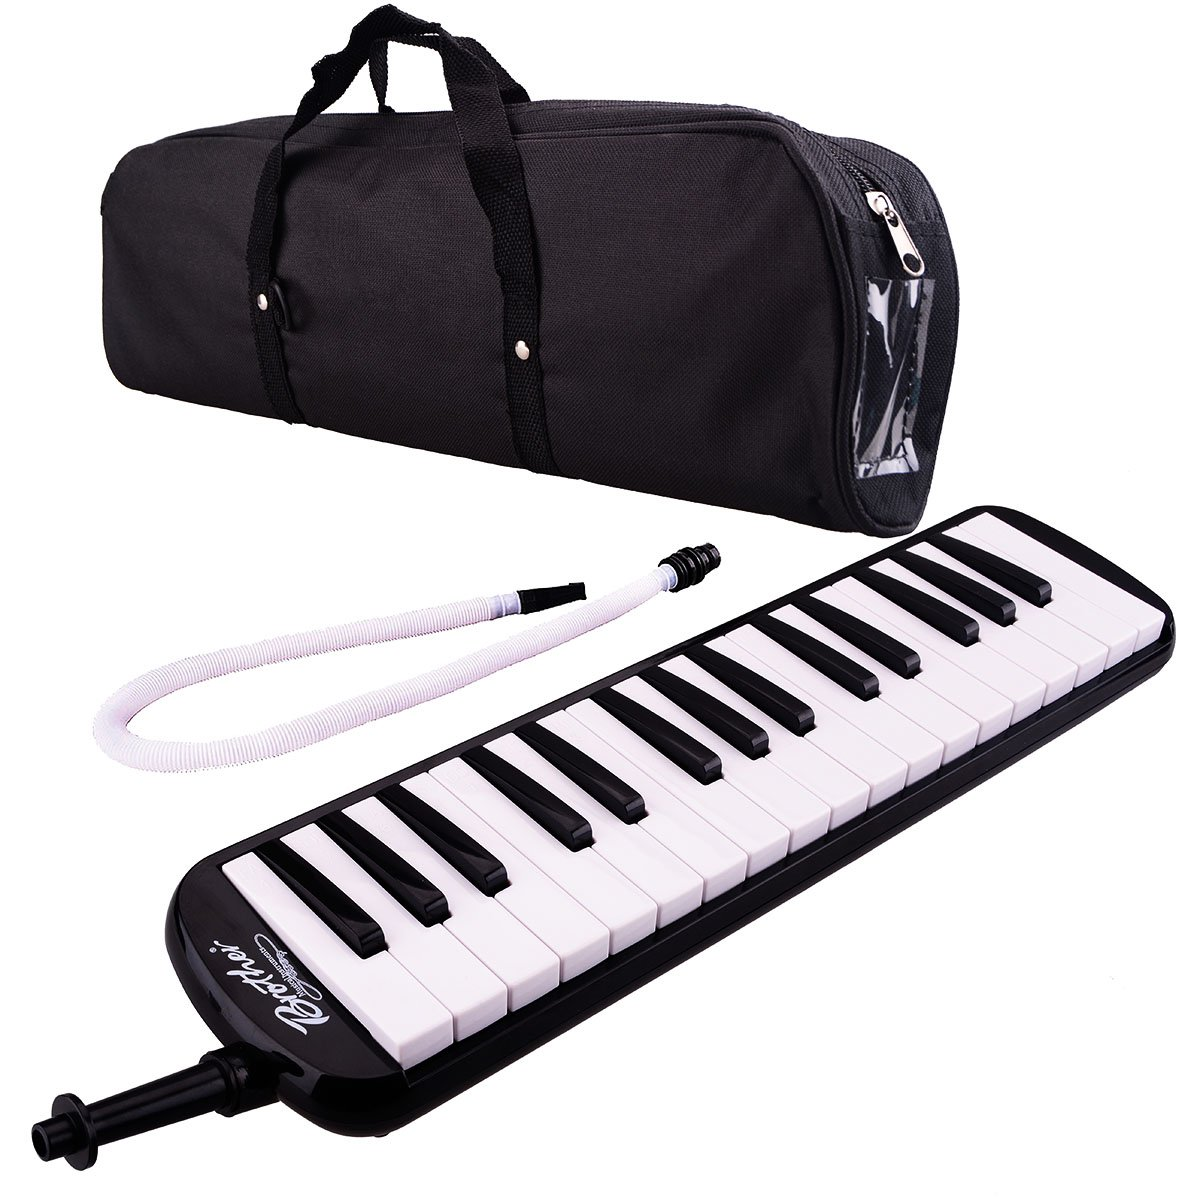 32 Piano Keys Melodica Musical Instrument for Education Teaching and Playing (Black)